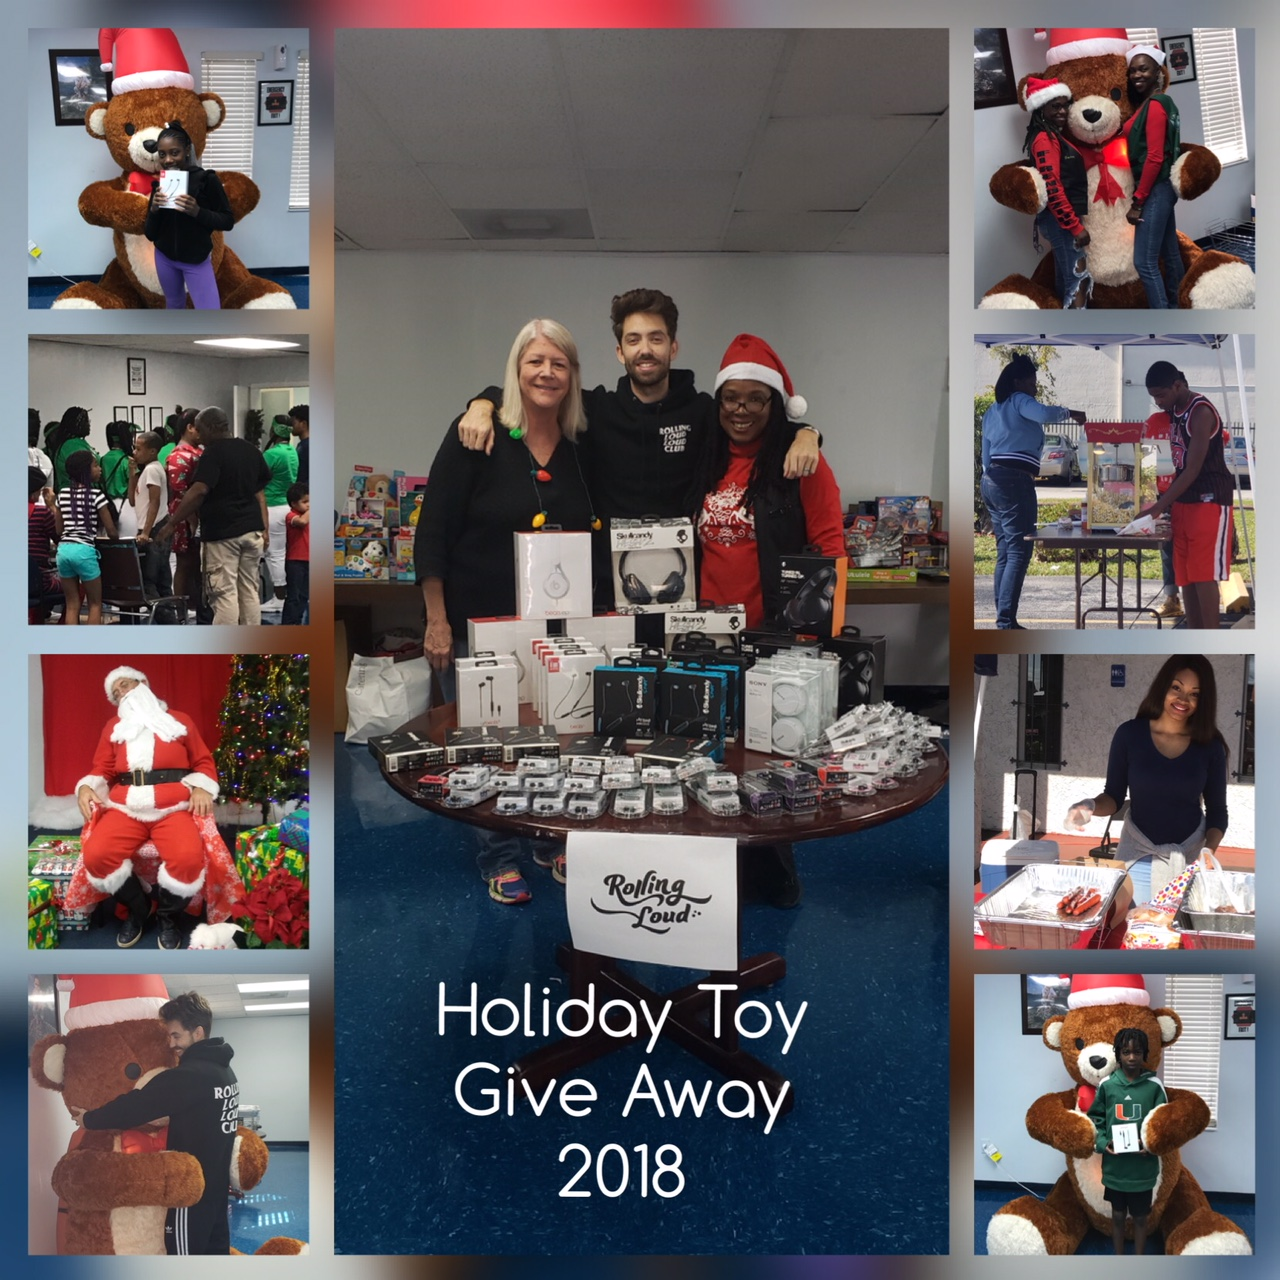 Holiday Toy Give Away 2018